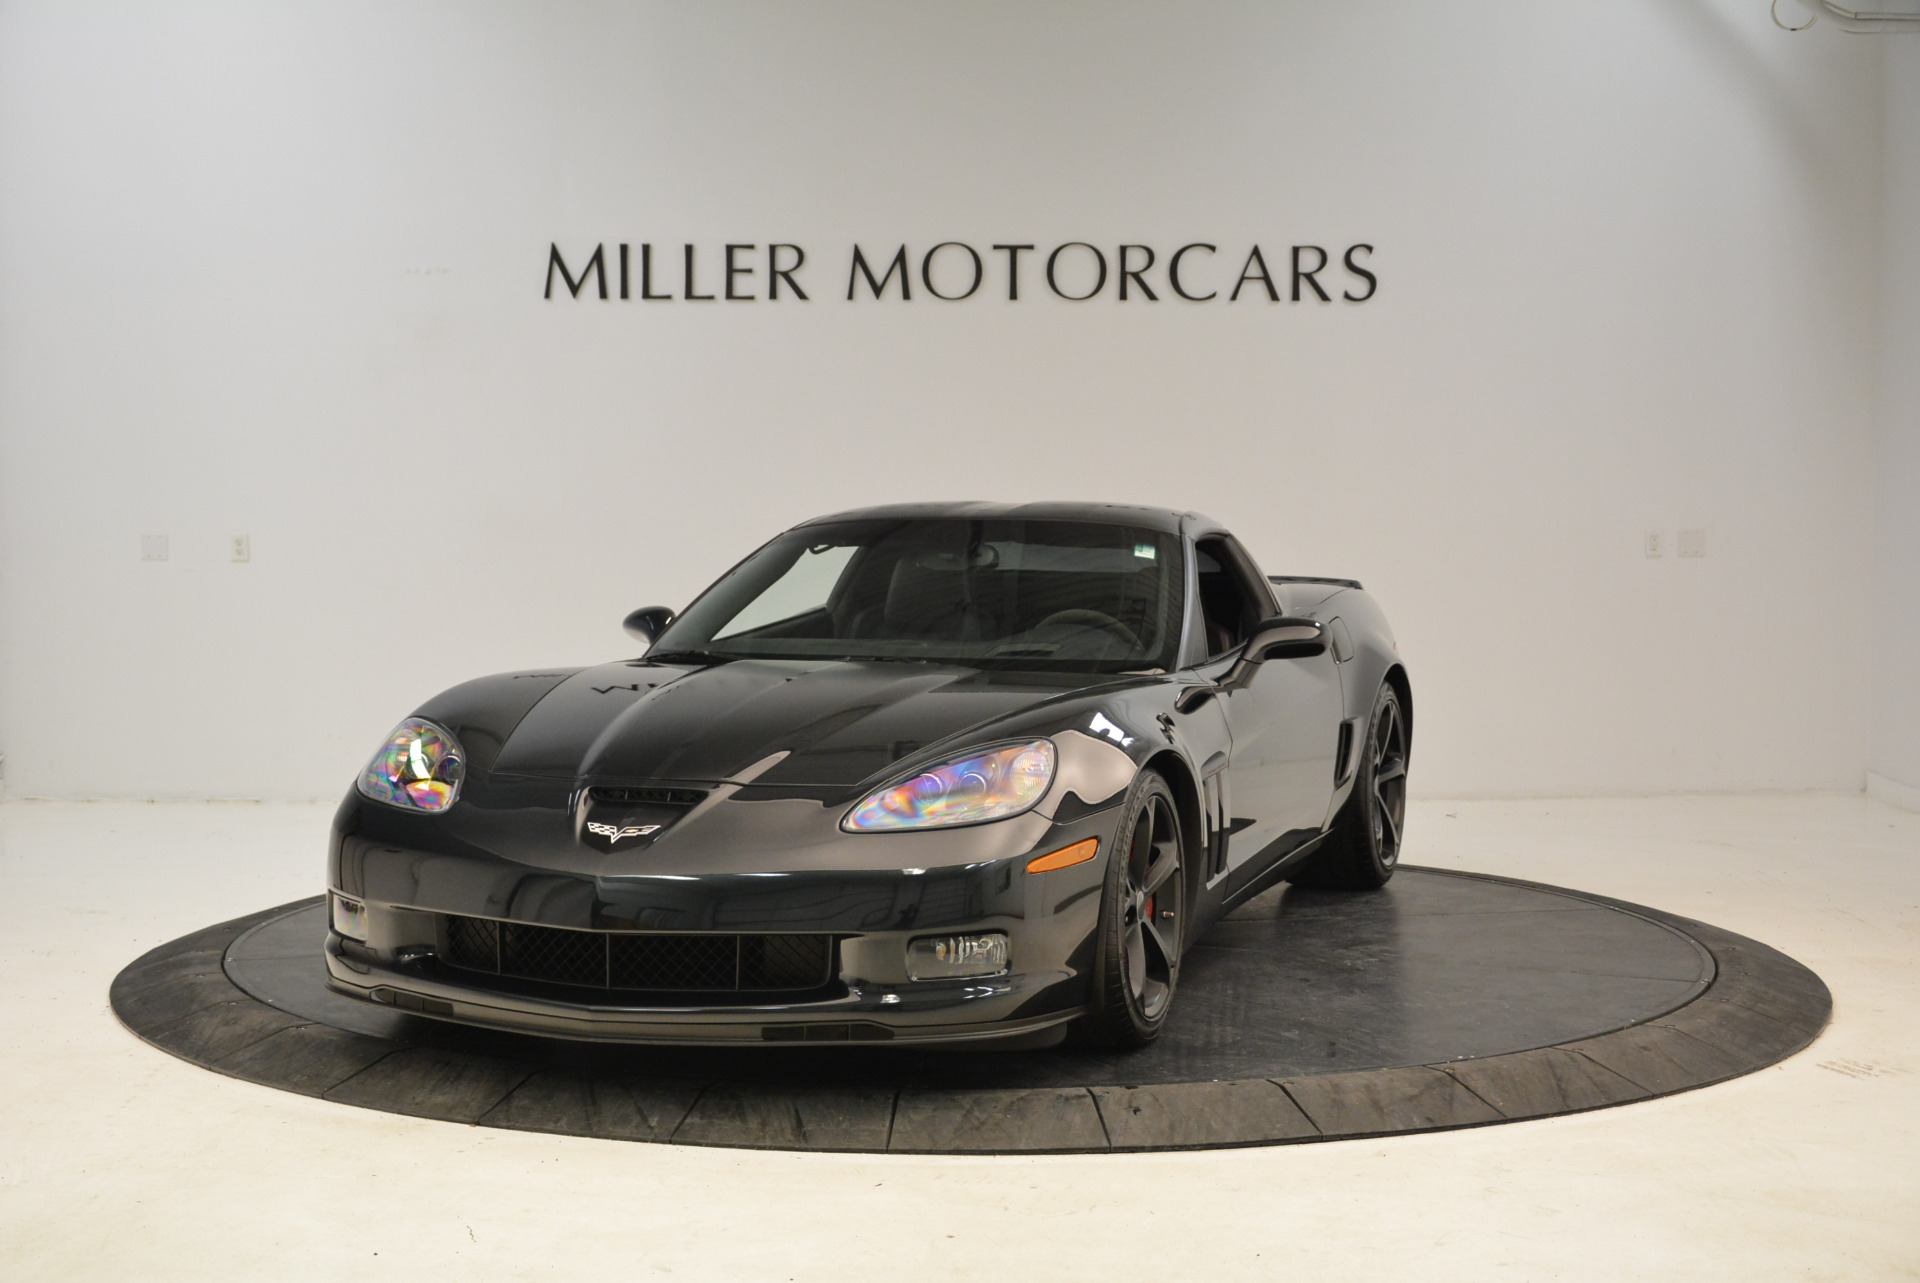 Used 2012 Chevrolet Corvette Z16 Grand Sport for sale Sold at Alfa Romeo of Westport in Westport CT 06880 1